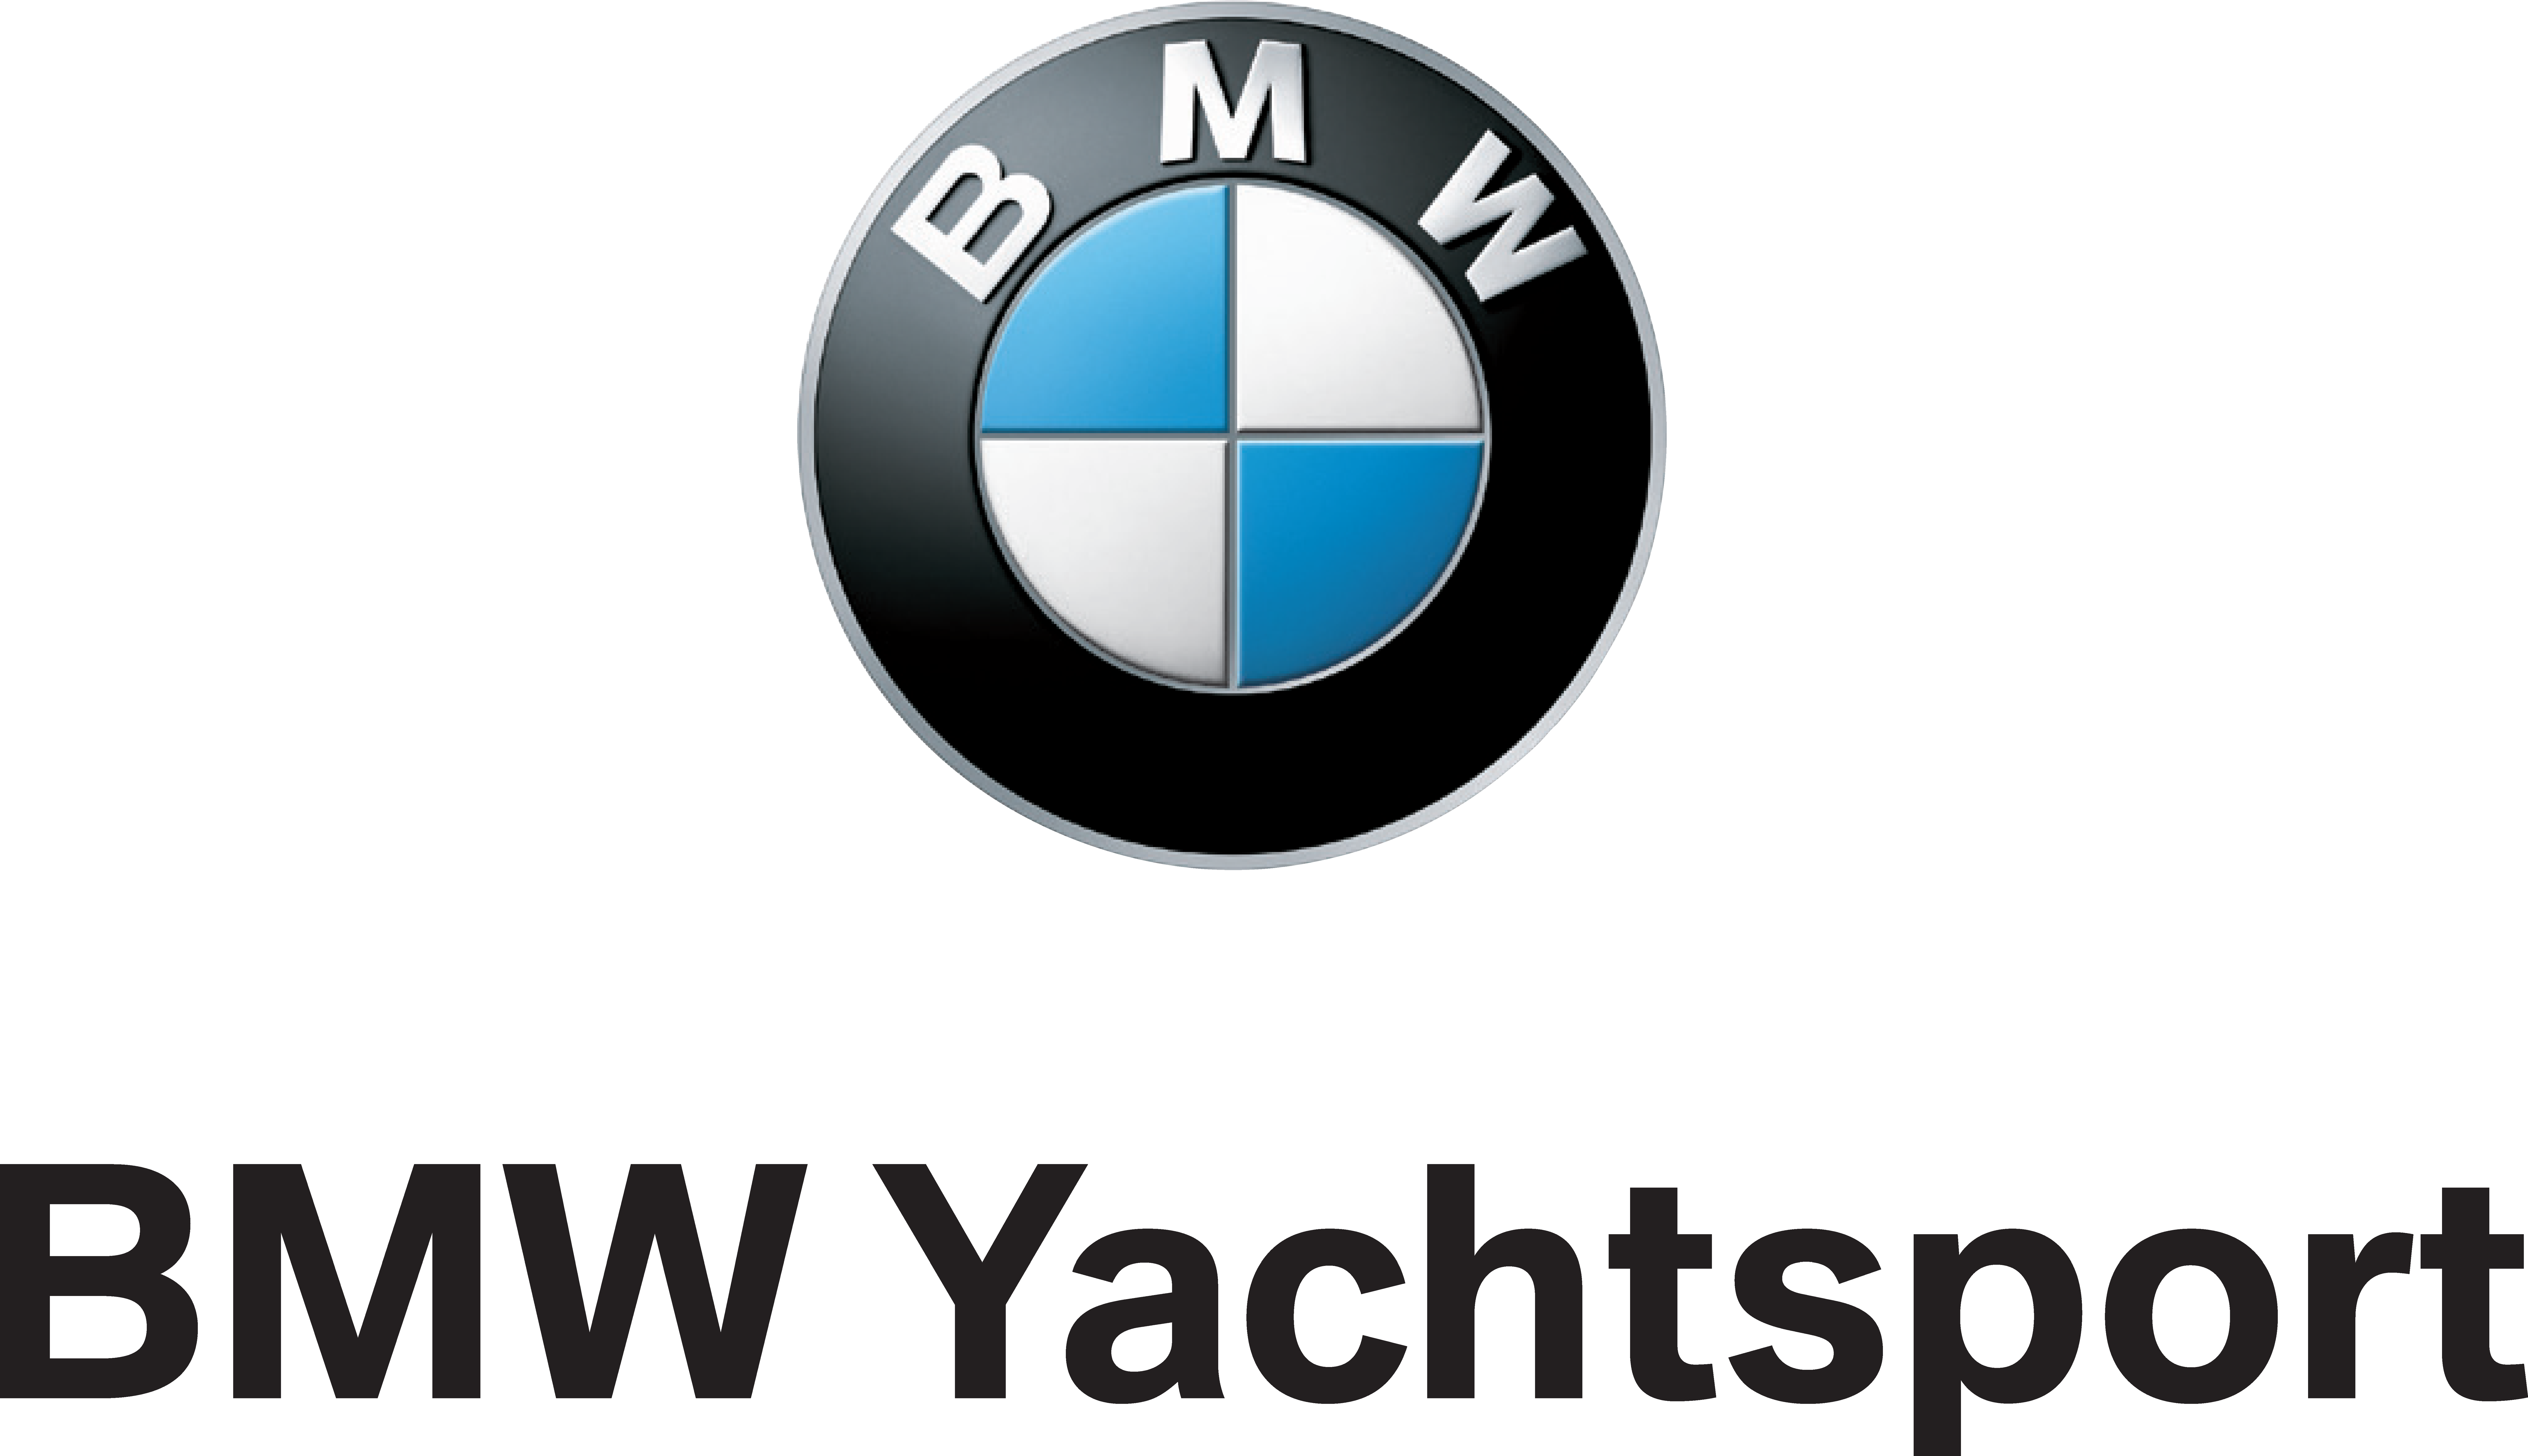 BMW_Yachtsport_Propeller 40mm.png